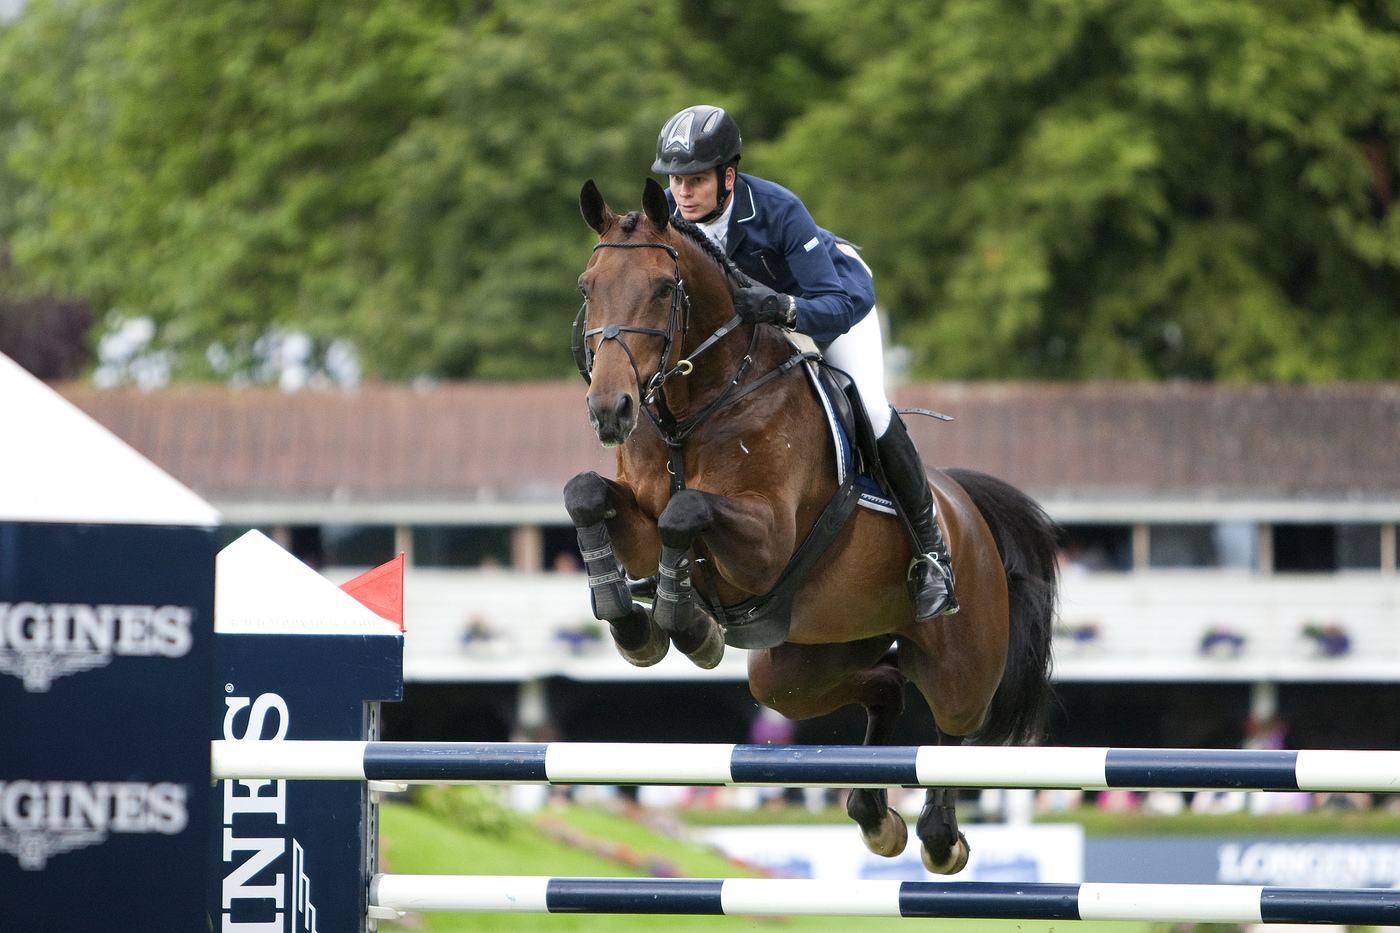 Longines Show Jumping Event: CSIO Dublin - The winners of the Longines Press Award for Elegance 2